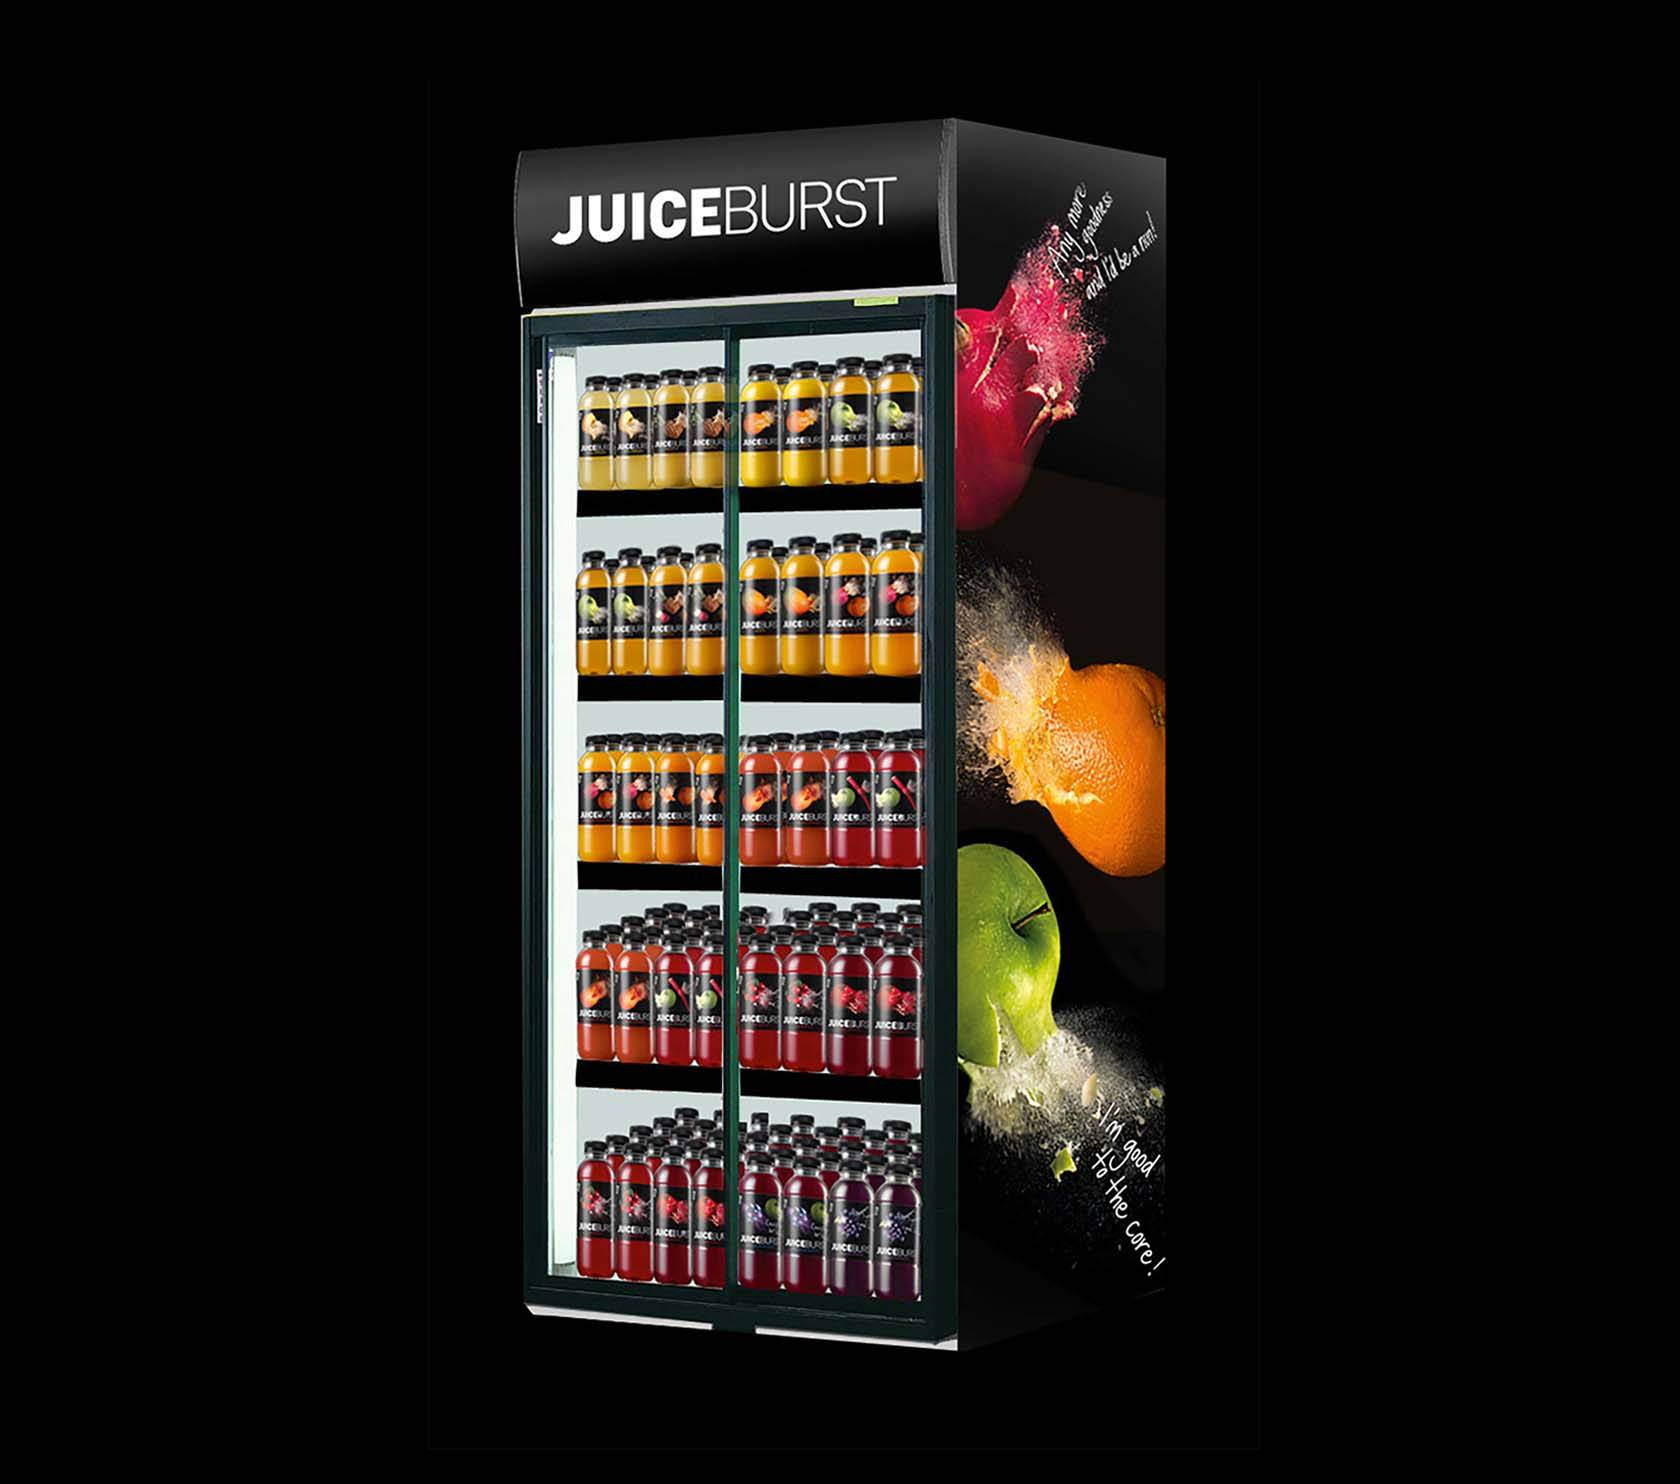 WMH-JUICEBURST-FRIDGE-WEB image